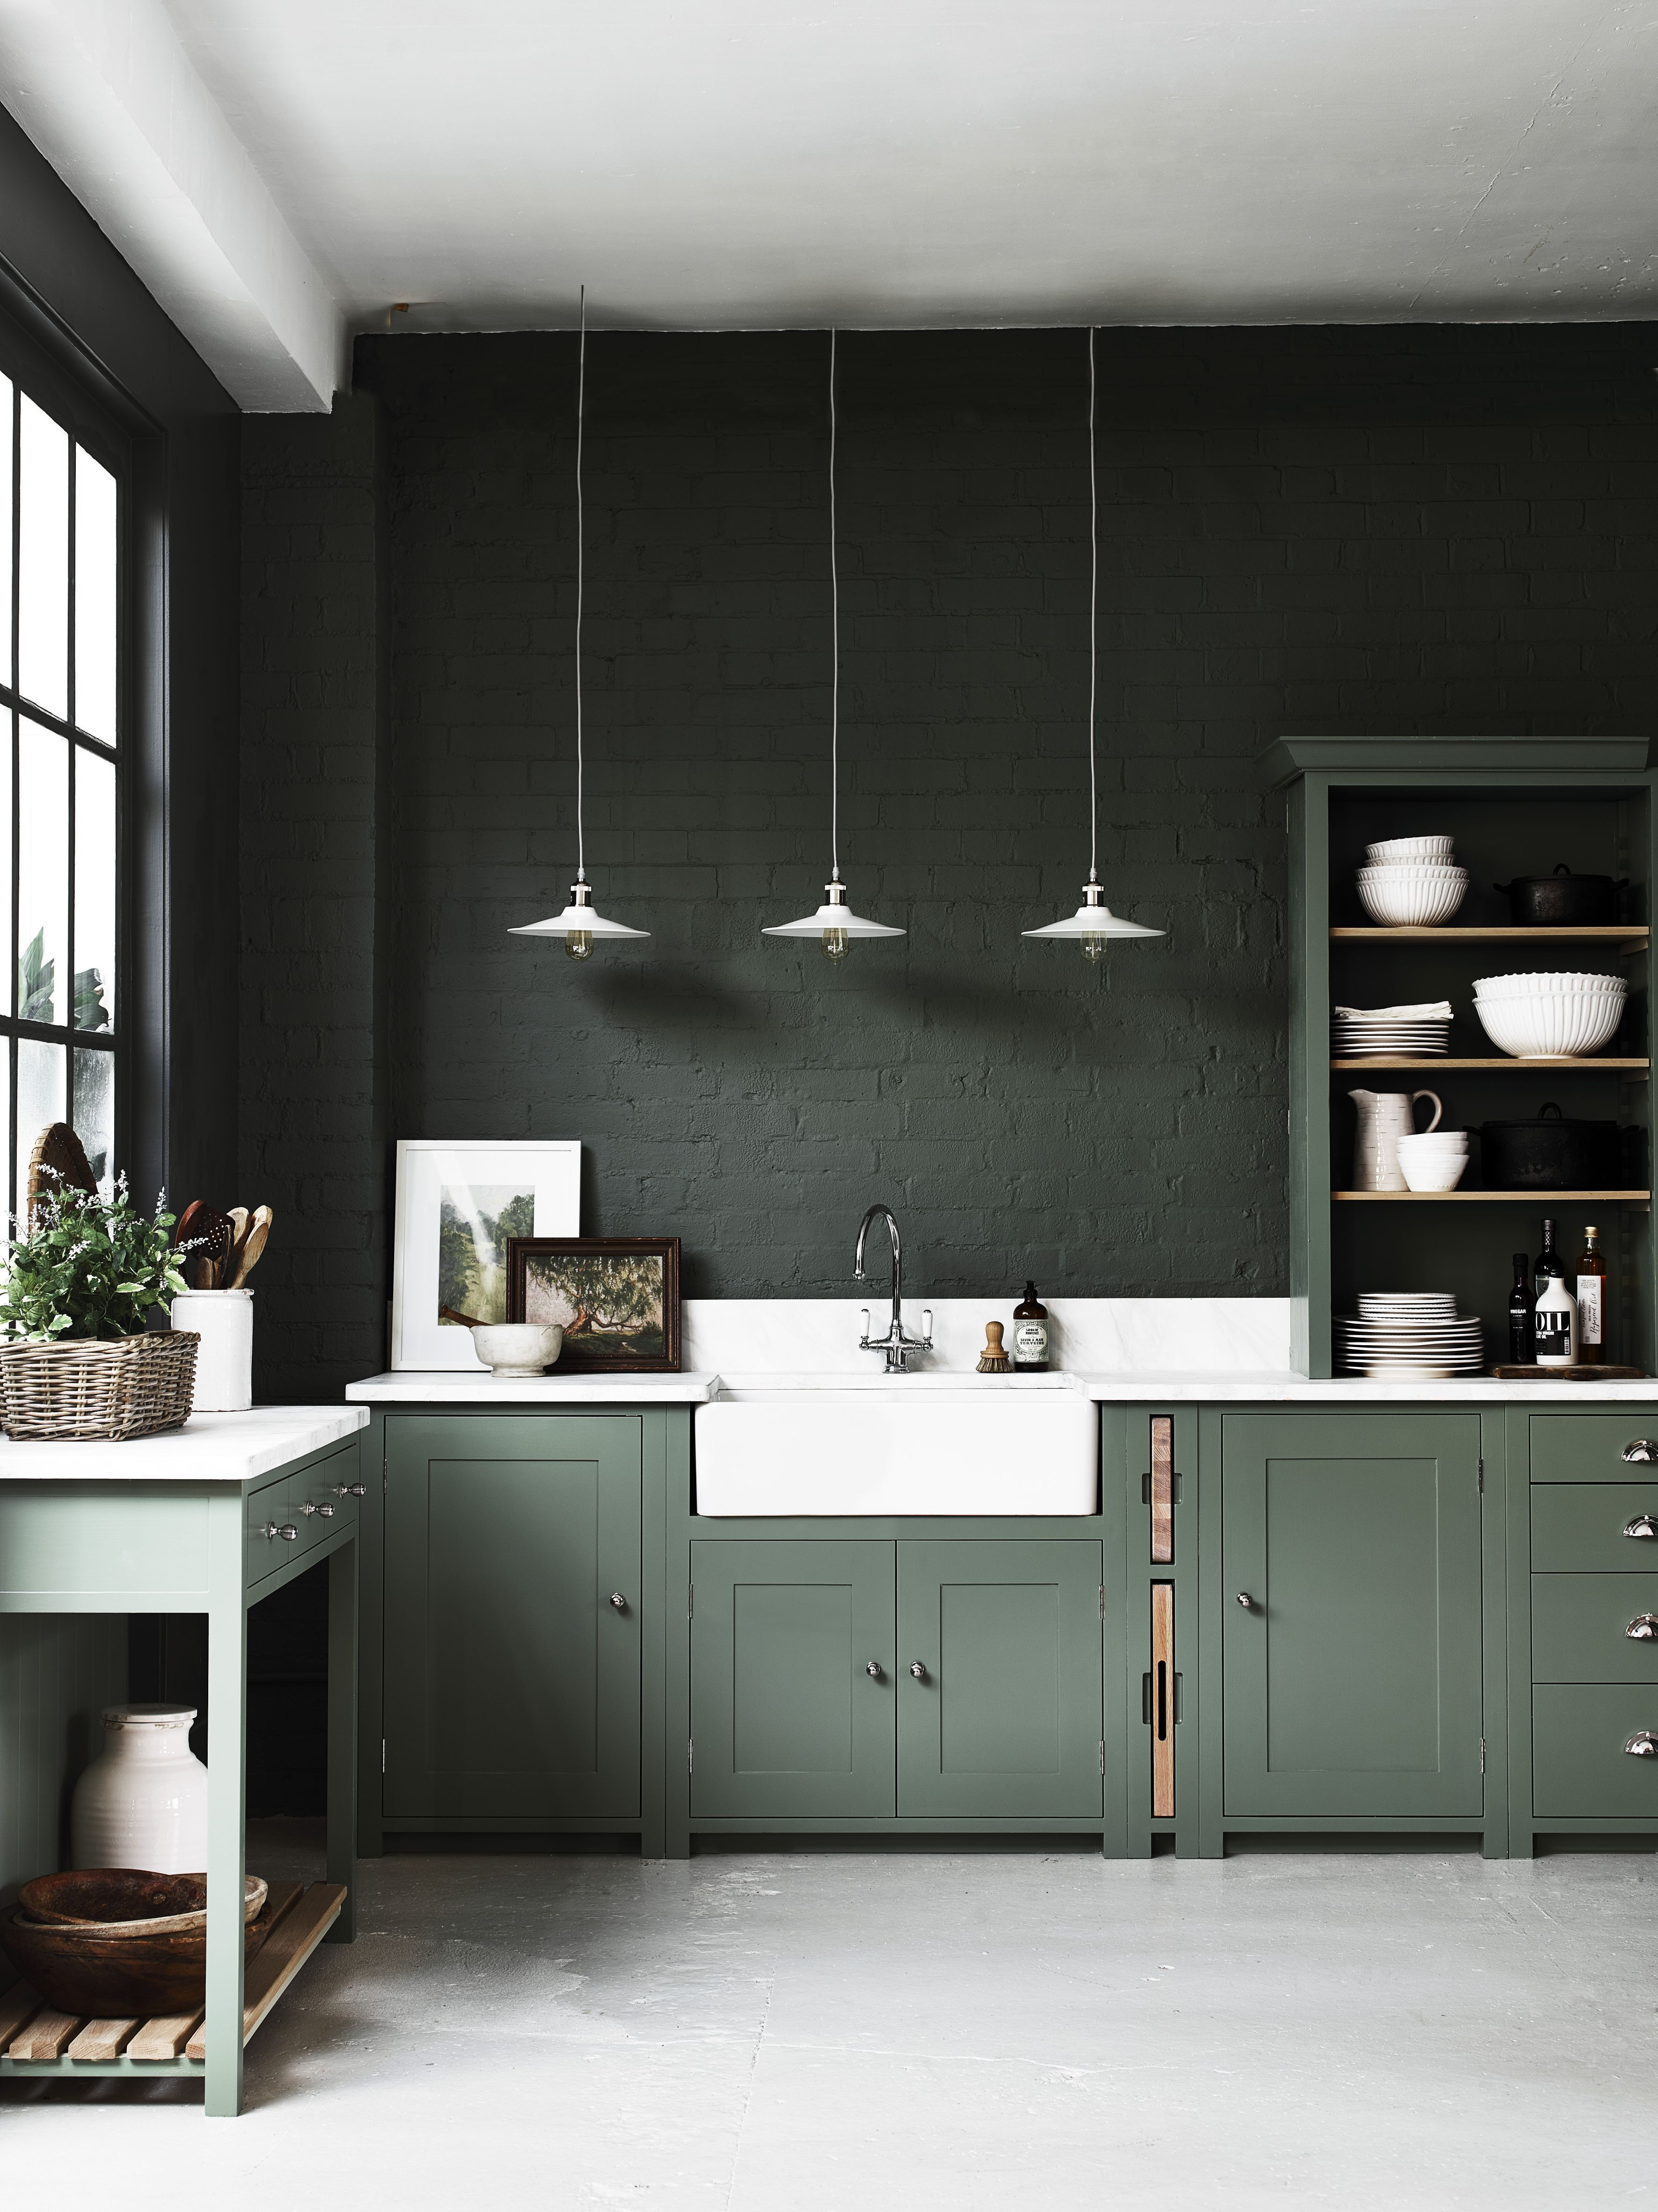 Beadboard Kitchen Cabinets For Sale In 2020 Green Kitchen Cabinets Studio Kitchen Interior Design Kitchen